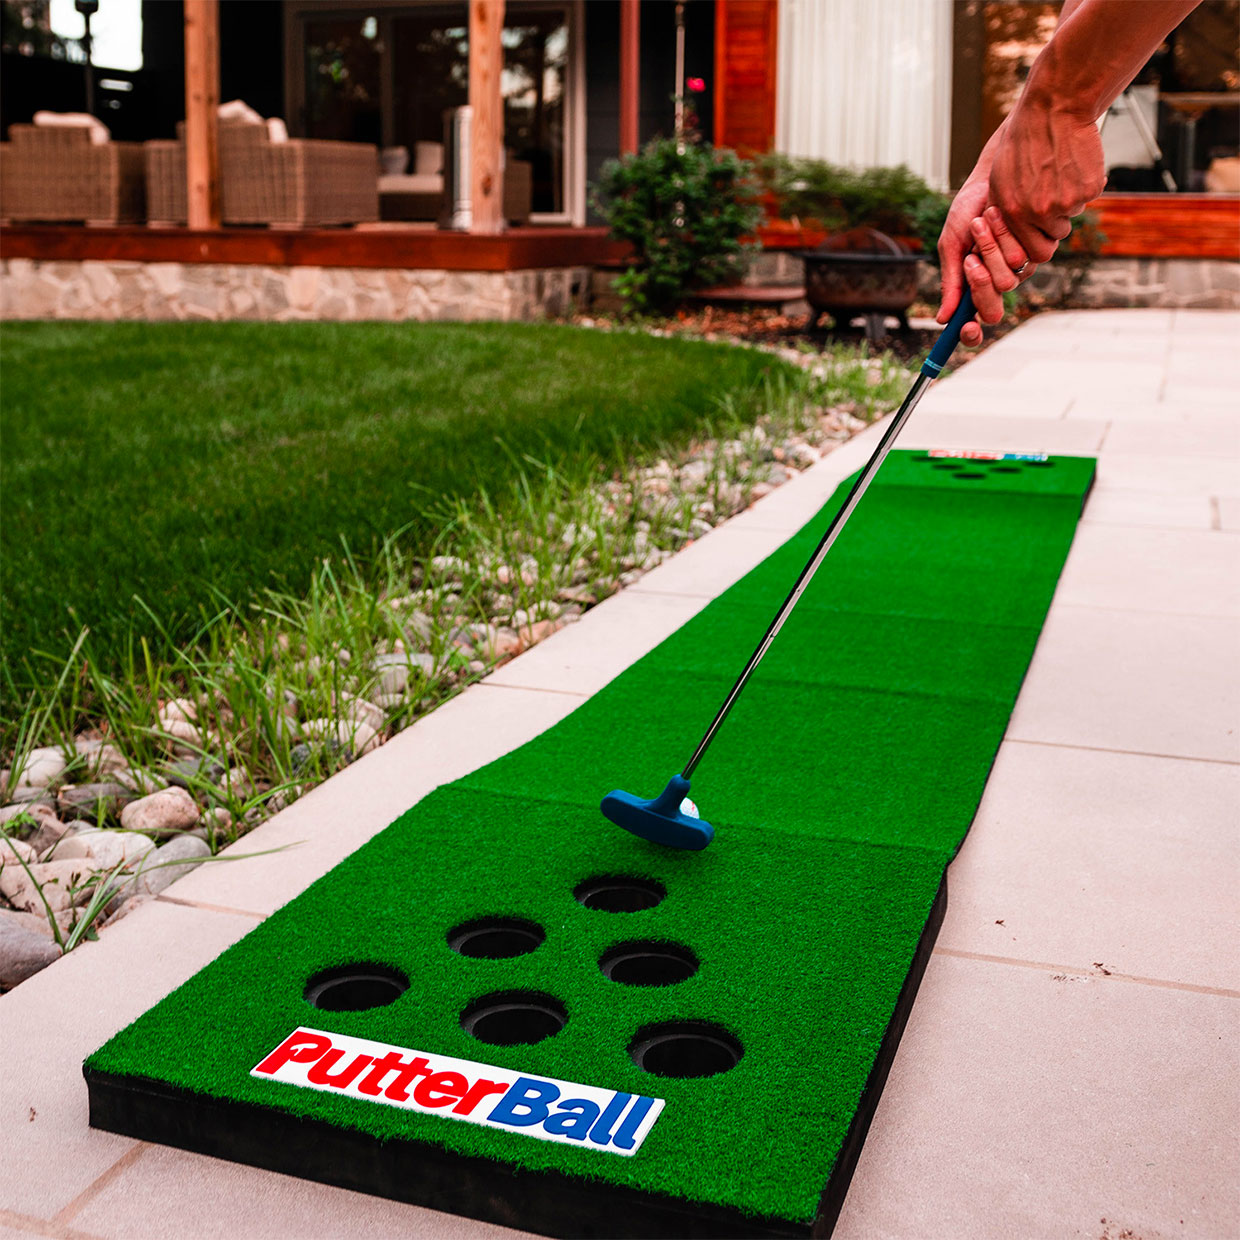 PutterBall Backyard Golf Game